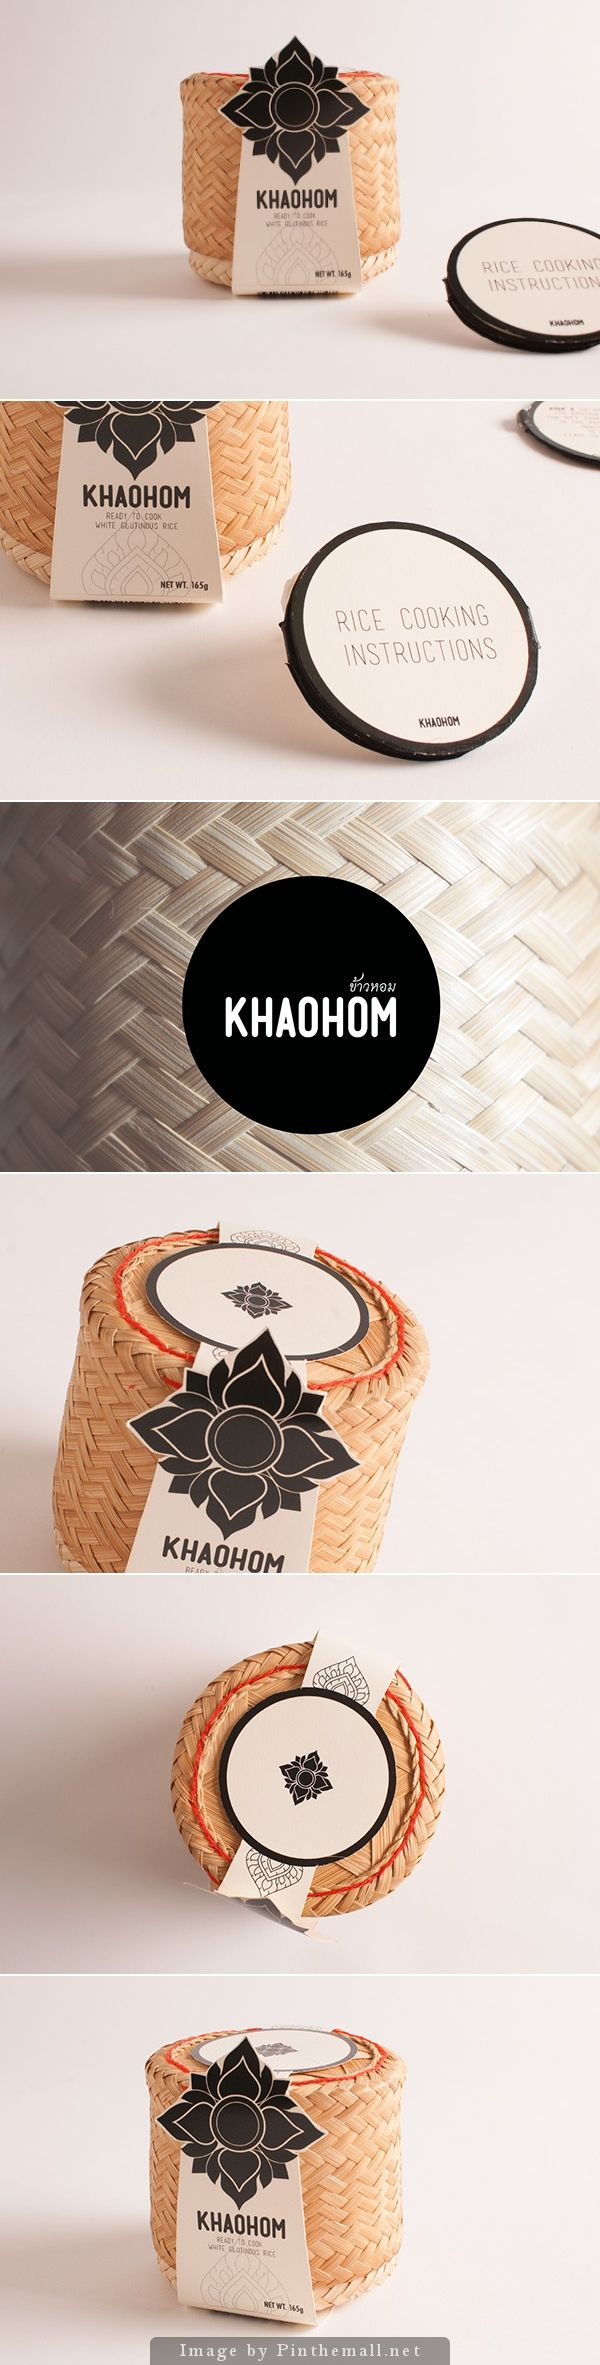 Khaohom: Sustainable Rice Packaging http://www.packagingoftheworld.com/2014/08/khaohom-sustainable-rice-packaging.html